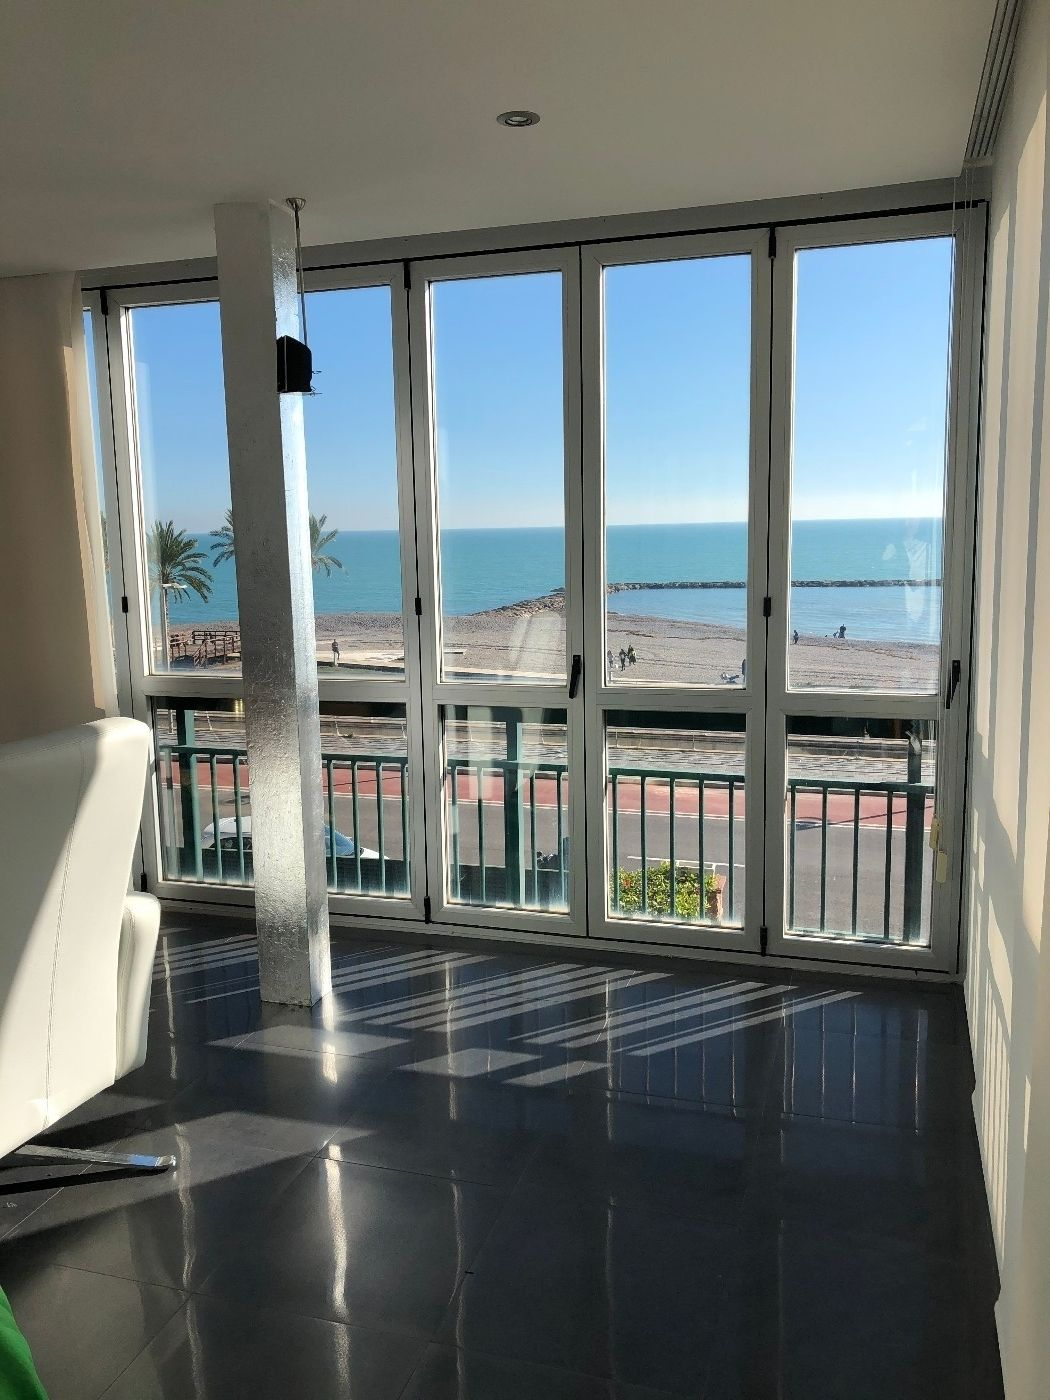 Miete Appartement in Avenida ferrandis salvador, 120. Apartament premium frente al mar